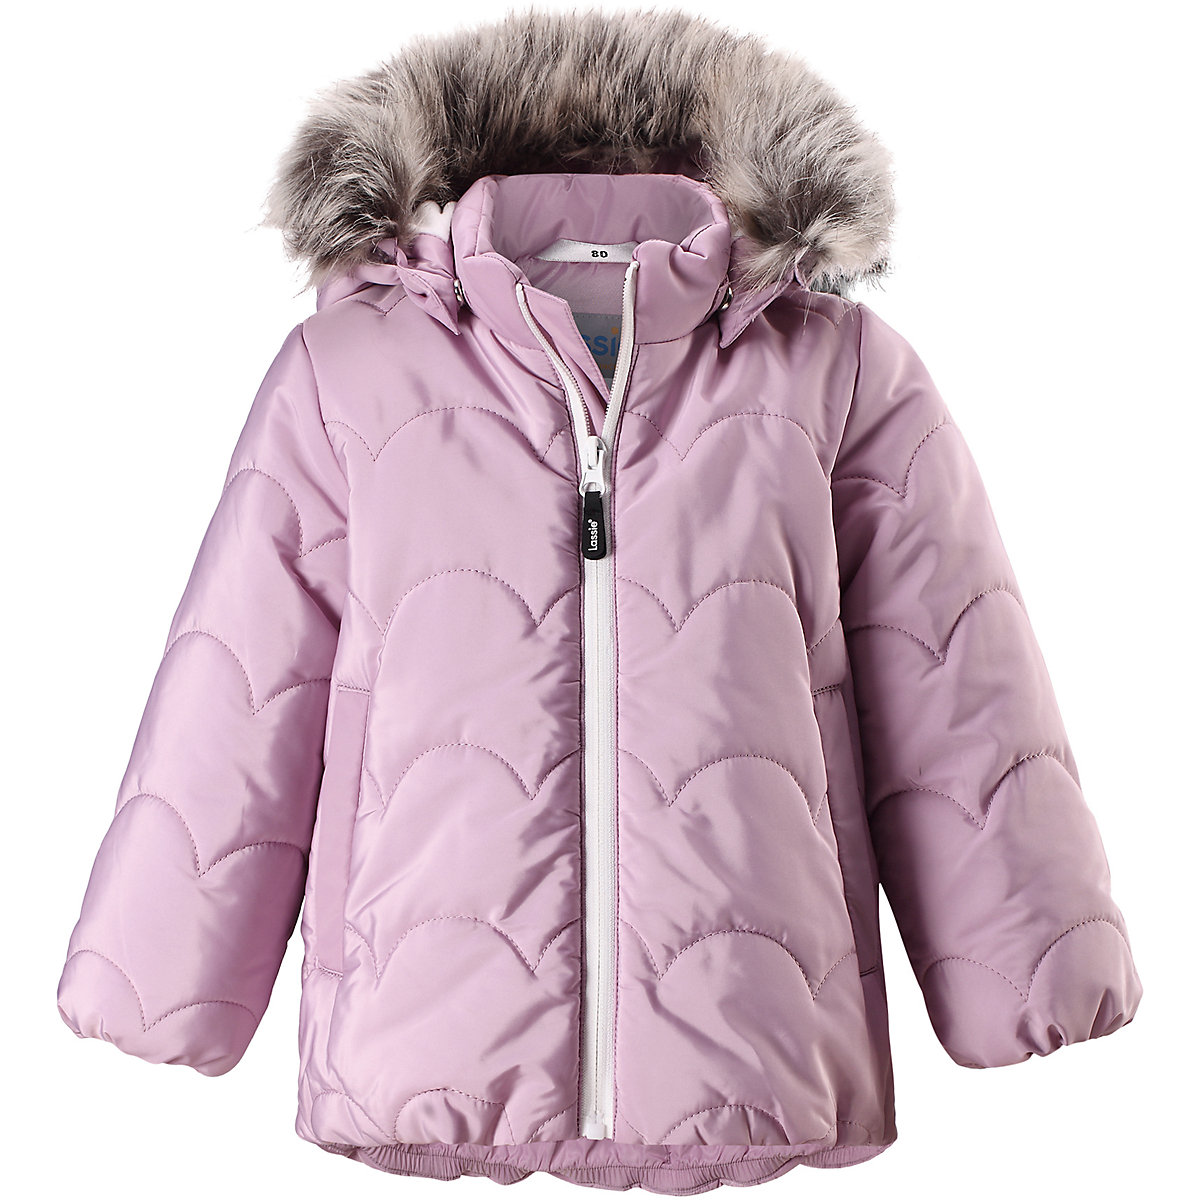 Jackets & Coats LASSIE for girls 8629413 Jacket Coat Denim Cardigan Warm Children clothes Kids biboymall winter coat 2017 military coats women cotton wadded hooded jacket casual parkas thickness plus size snow outwear